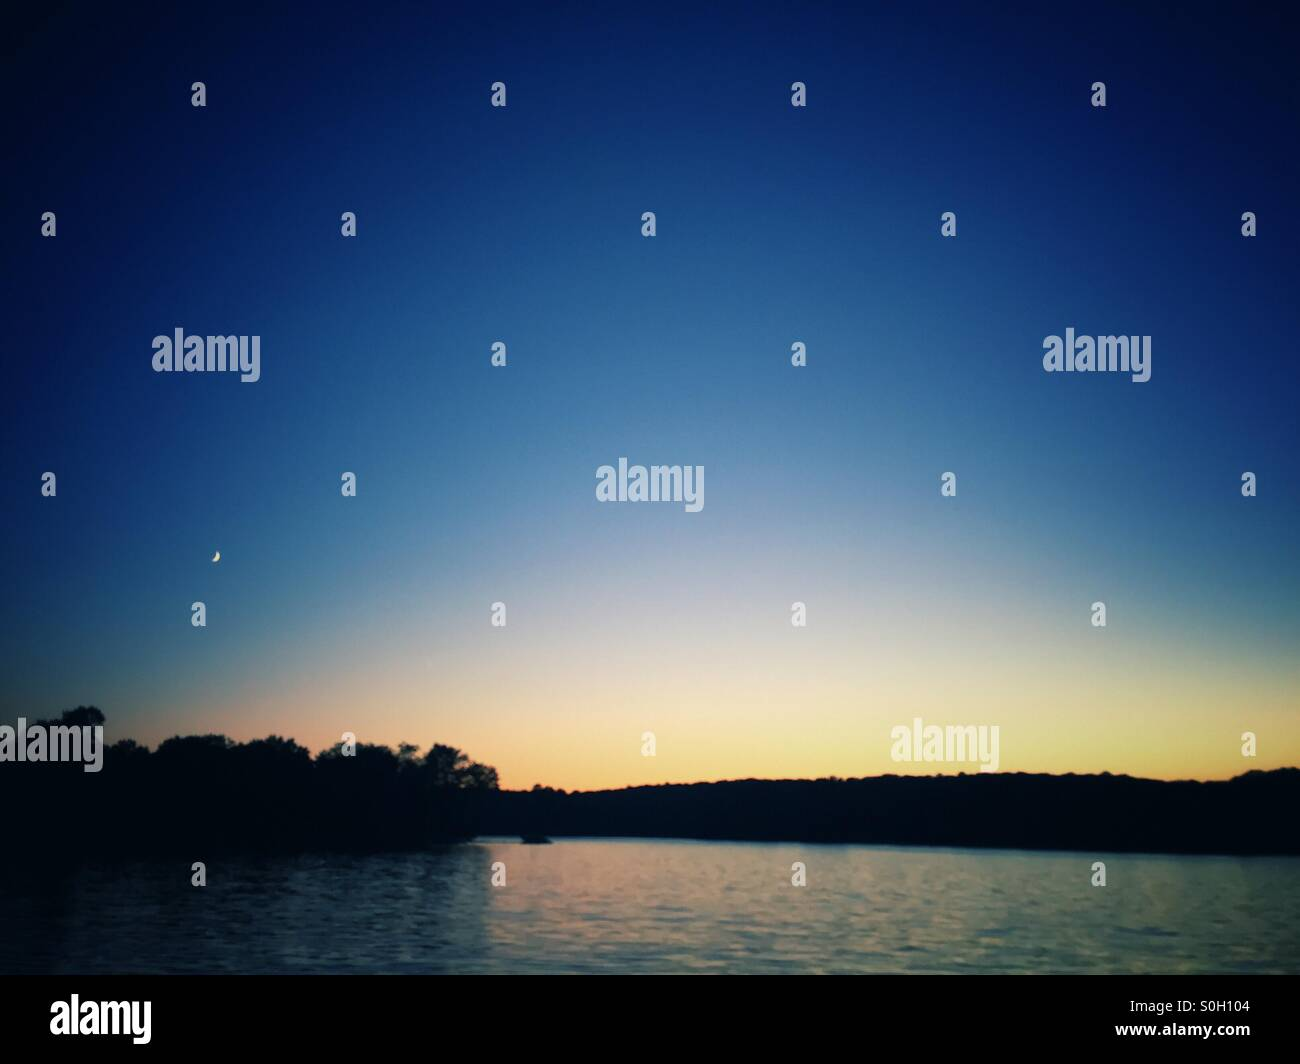 Sunset over lake in cottage country, haliburton, ontario - Stock Image